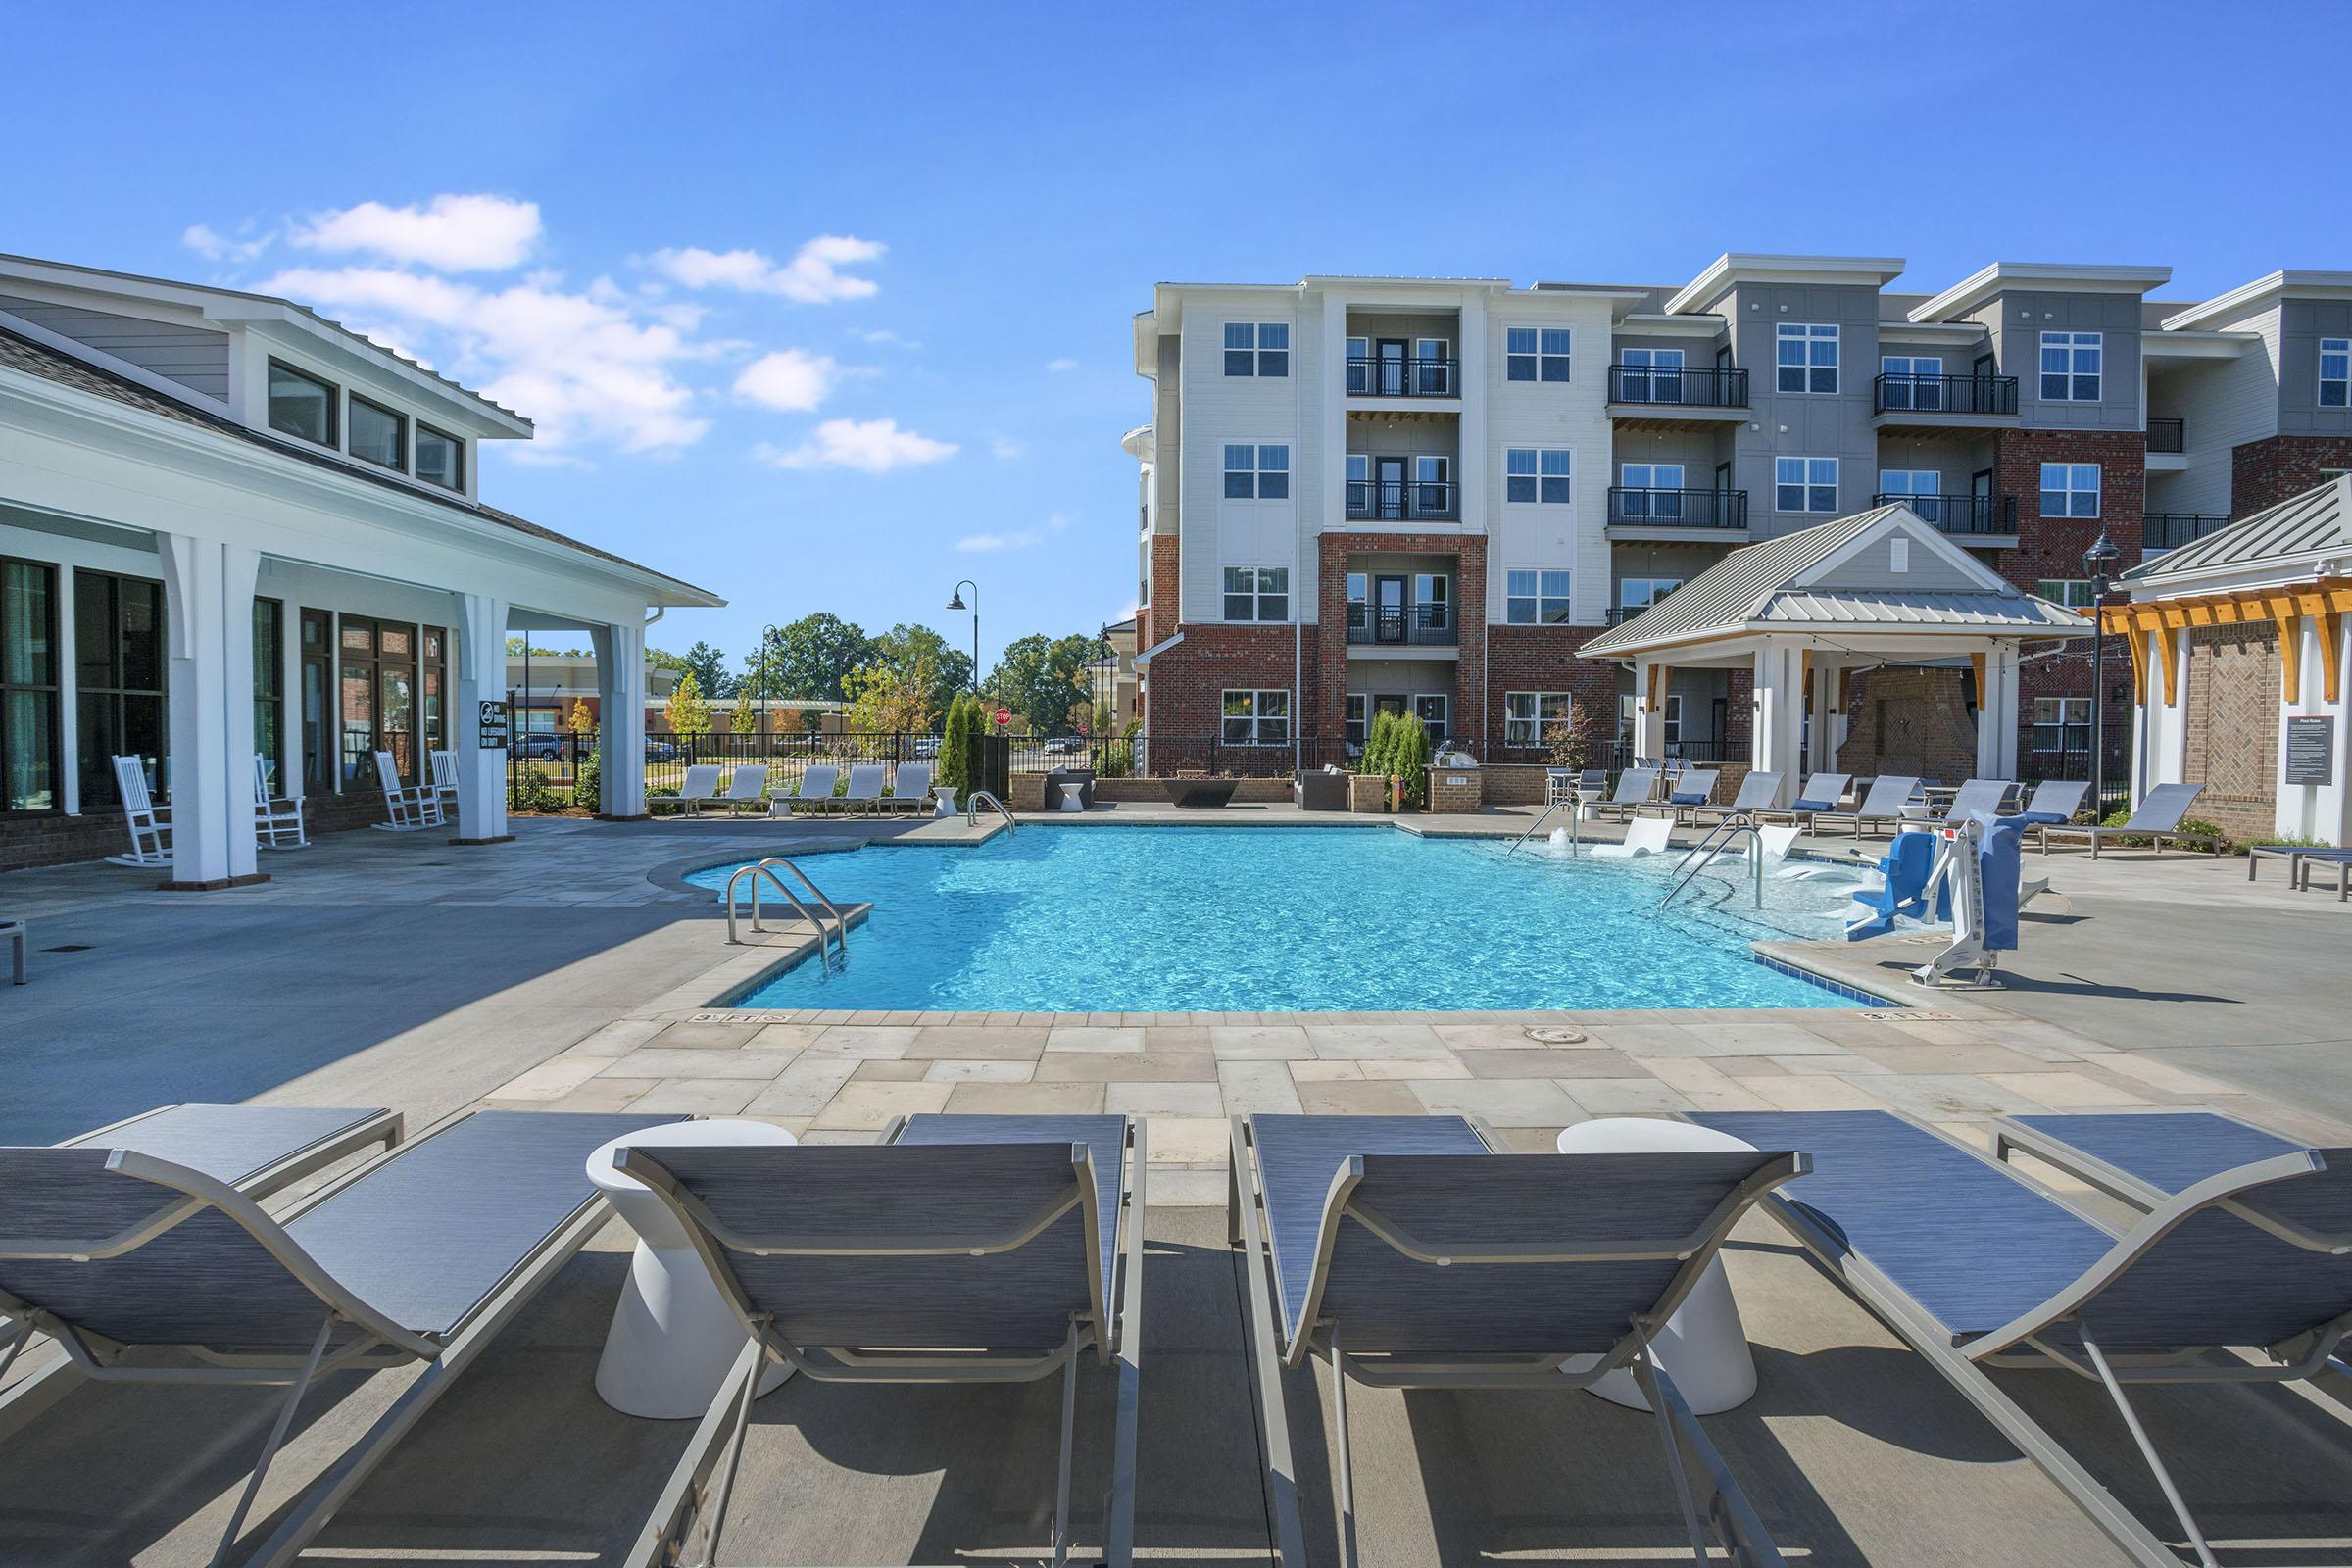 PROSPERITY-VILLAGE-APARTMENTS-CHARLOTTE-NC-POOL-02.jpg